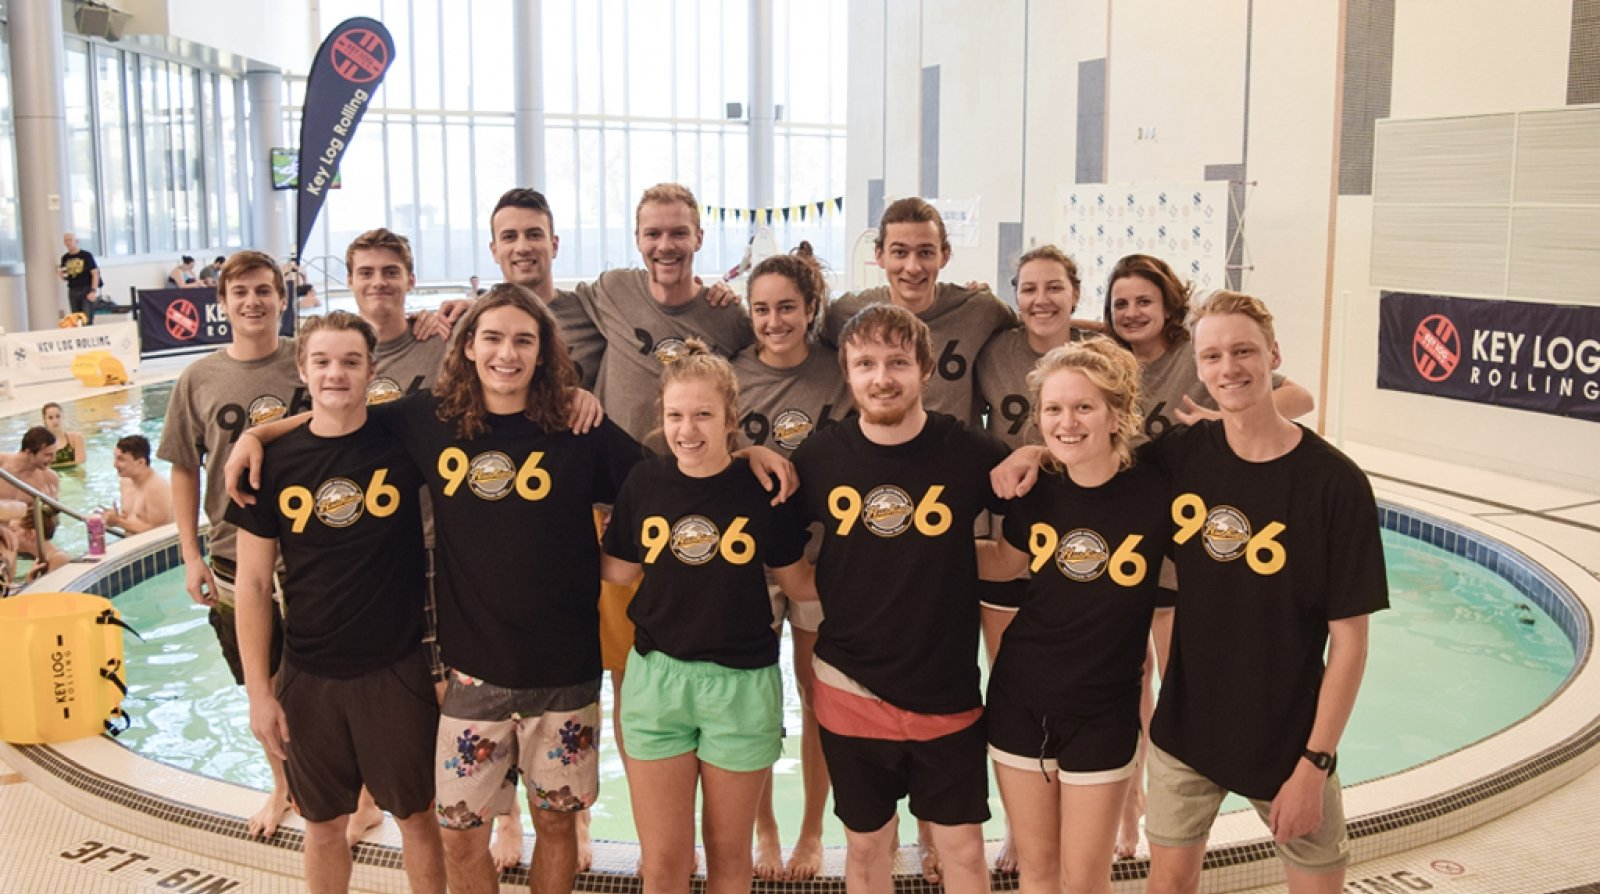 Students stand in a group wearing 906 T-shirts and shorts and bathing suits in front of an indoor pool at a log-rolling competition.